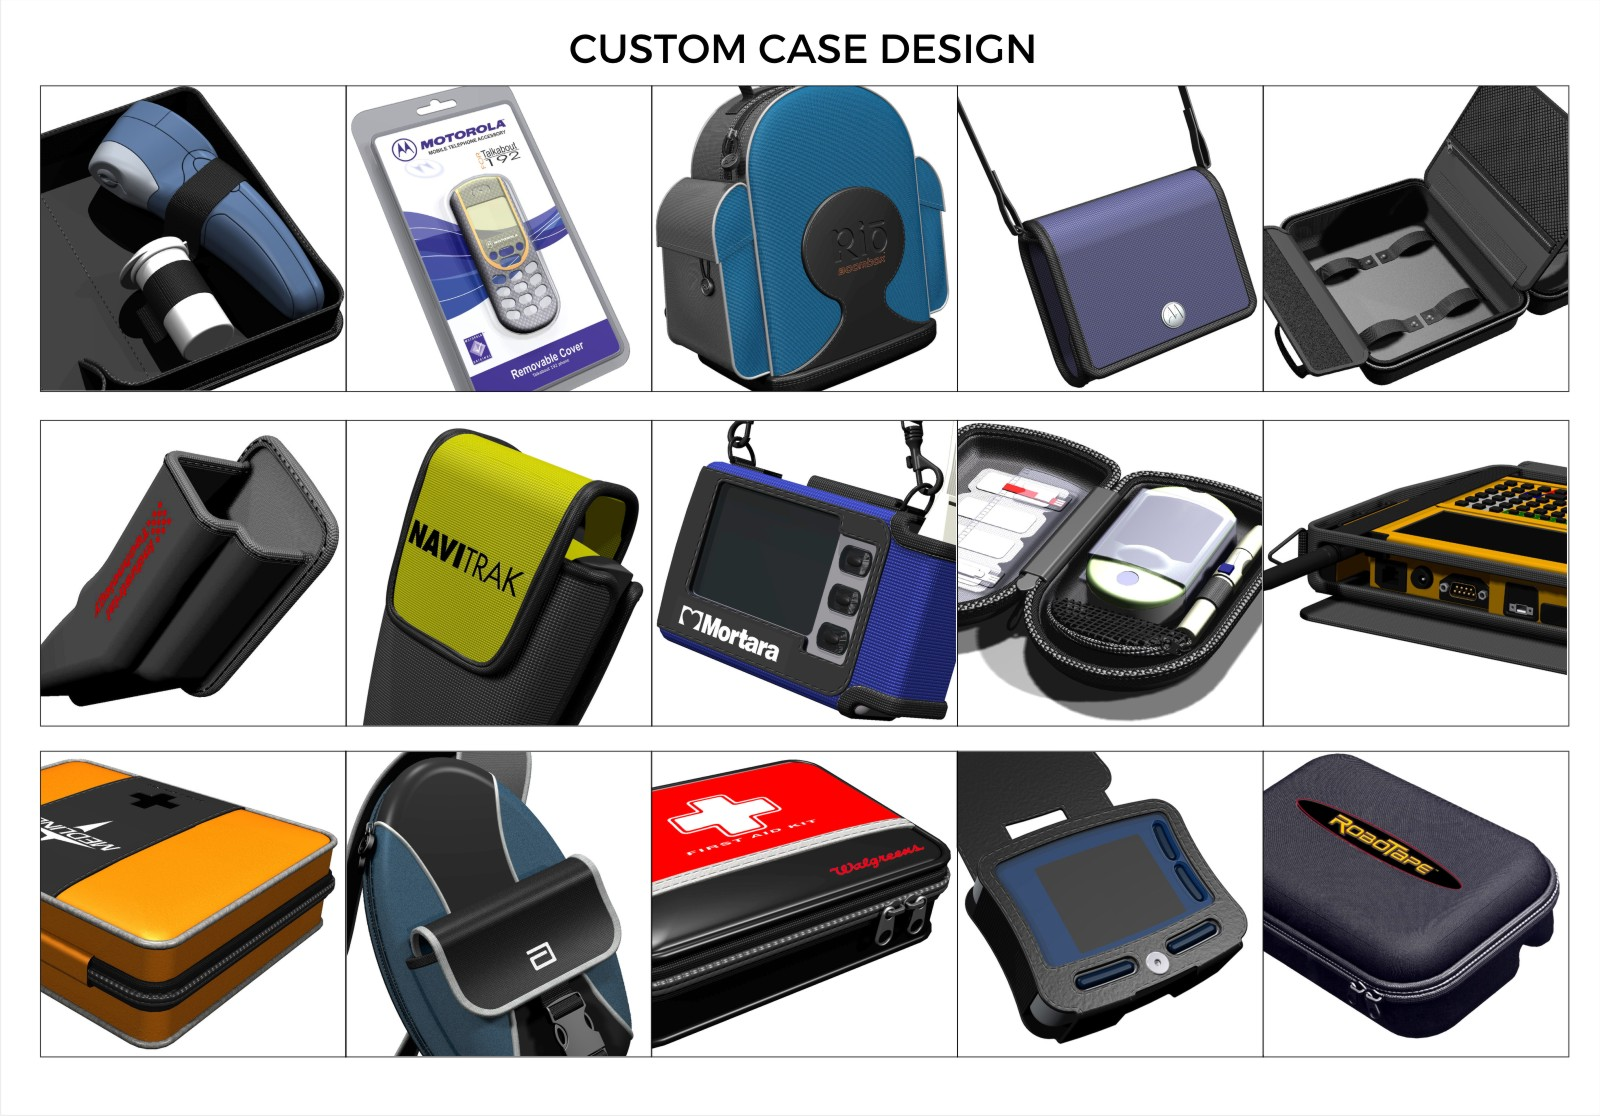 Custom Cases - Product Designers, Florida